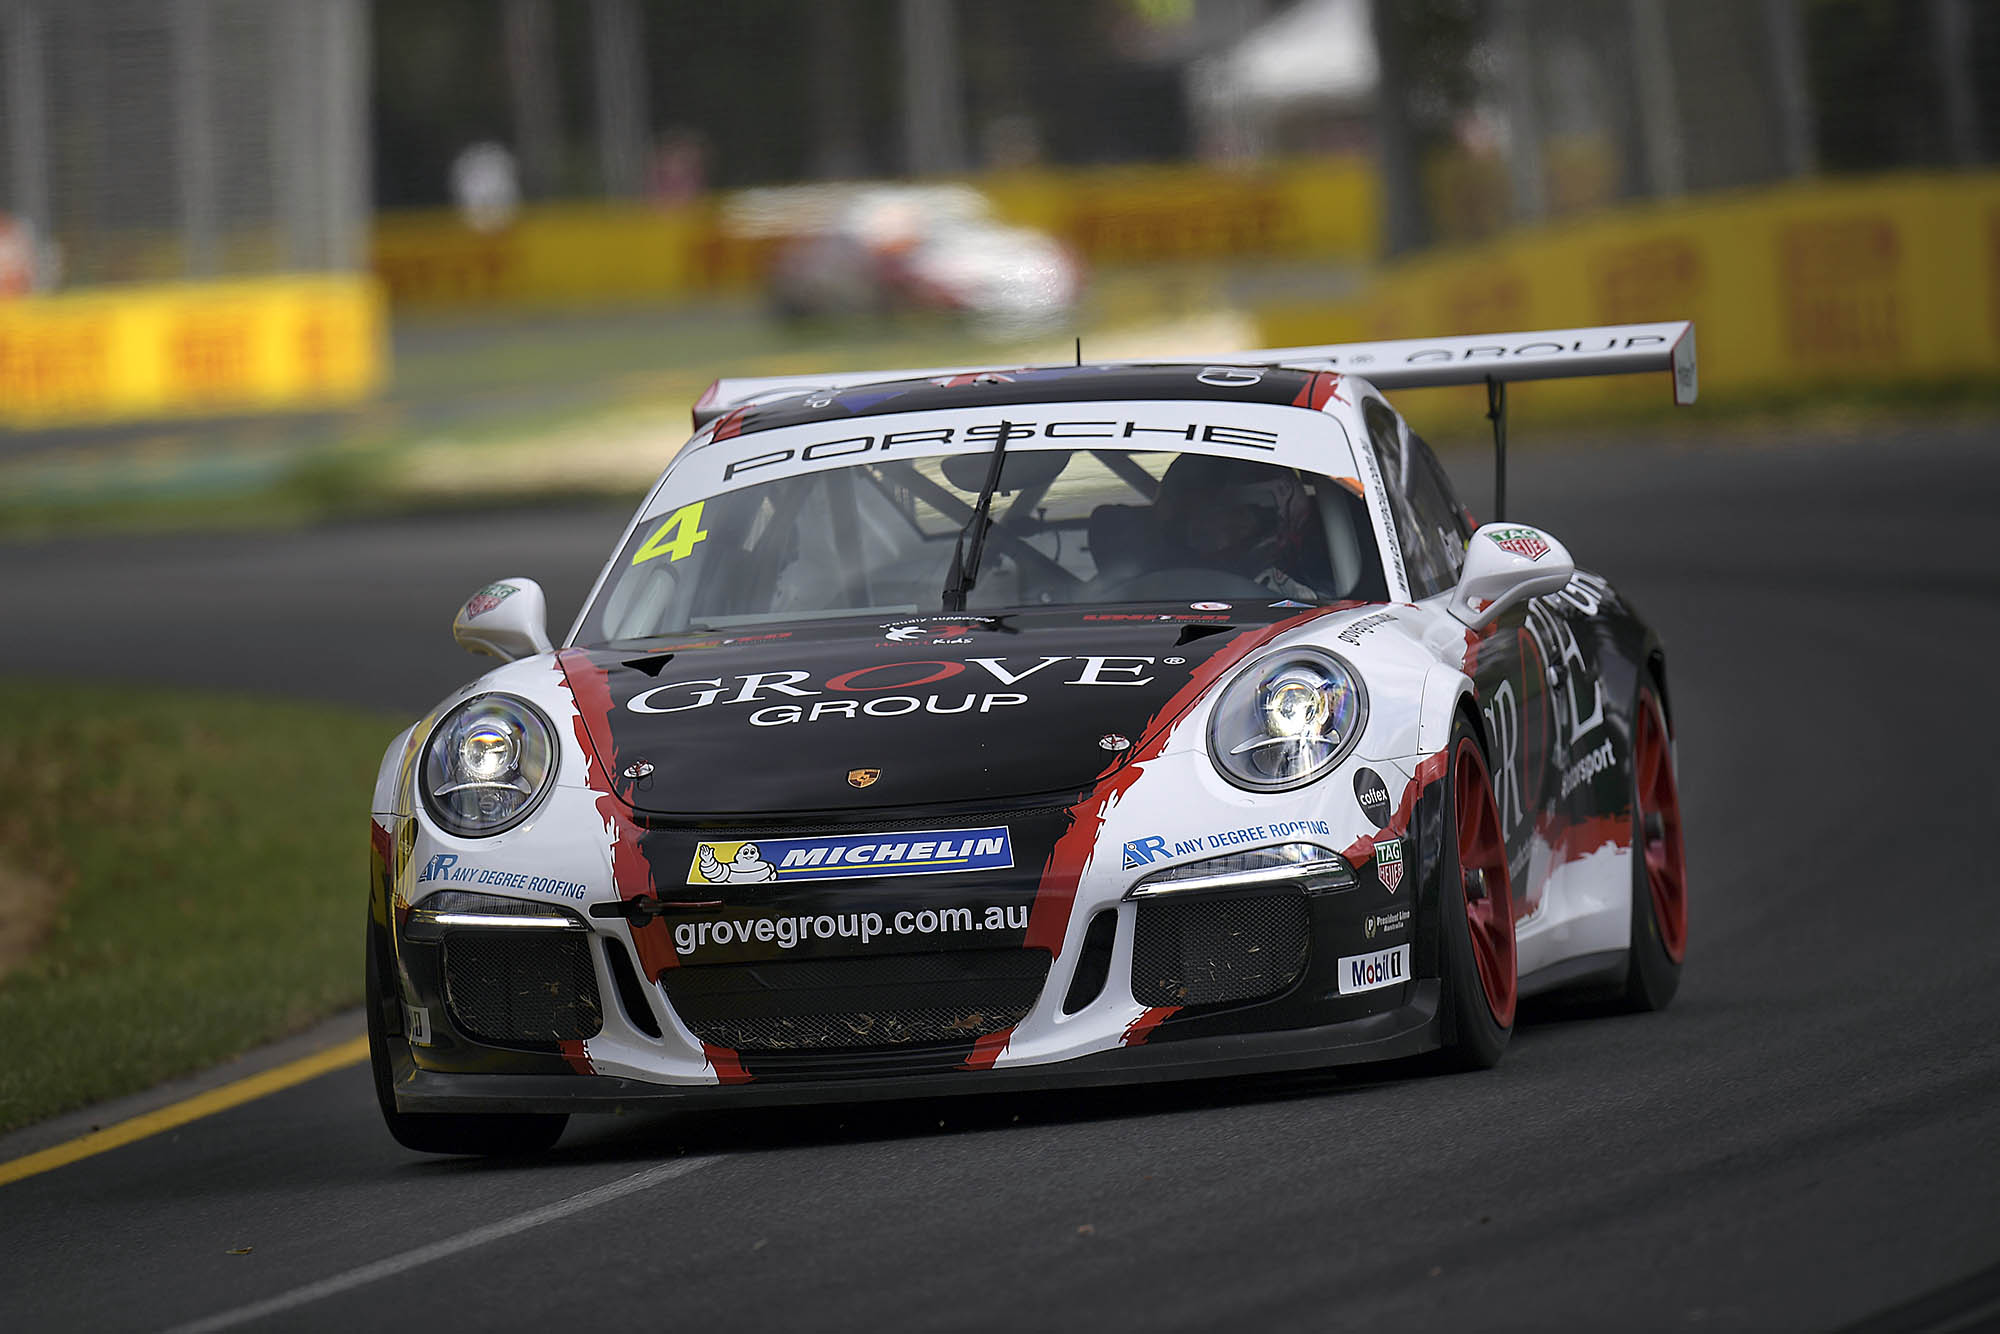 Porsche racer Stephen Grove is set to race at Spa